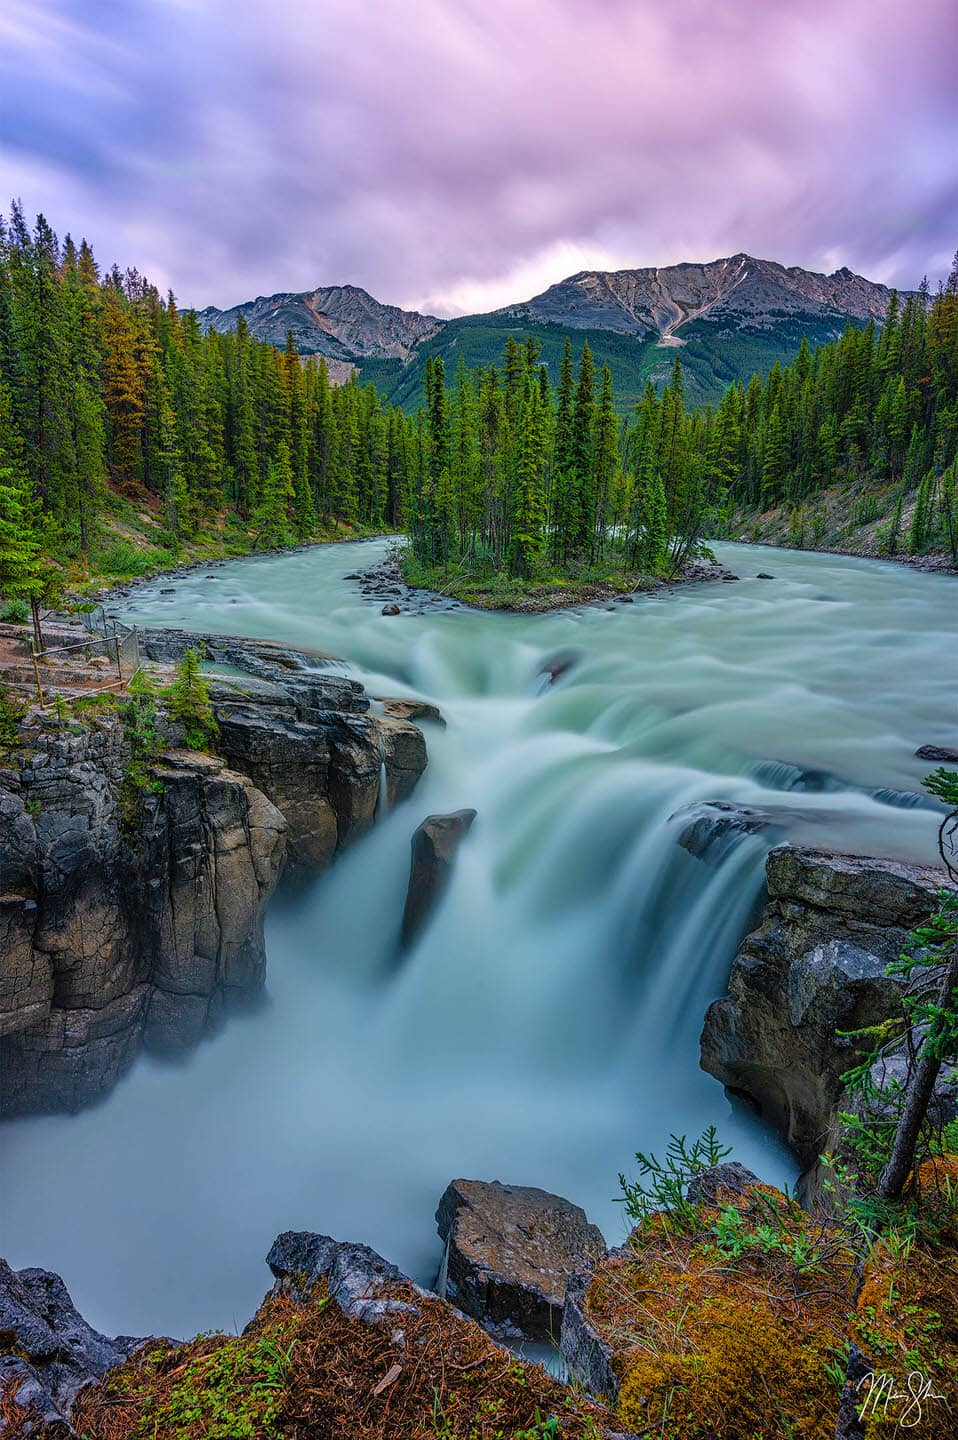 Limited Edition Luxury Fine Art Prints of the Sunwapta Falls in Jasper National Park, Canada